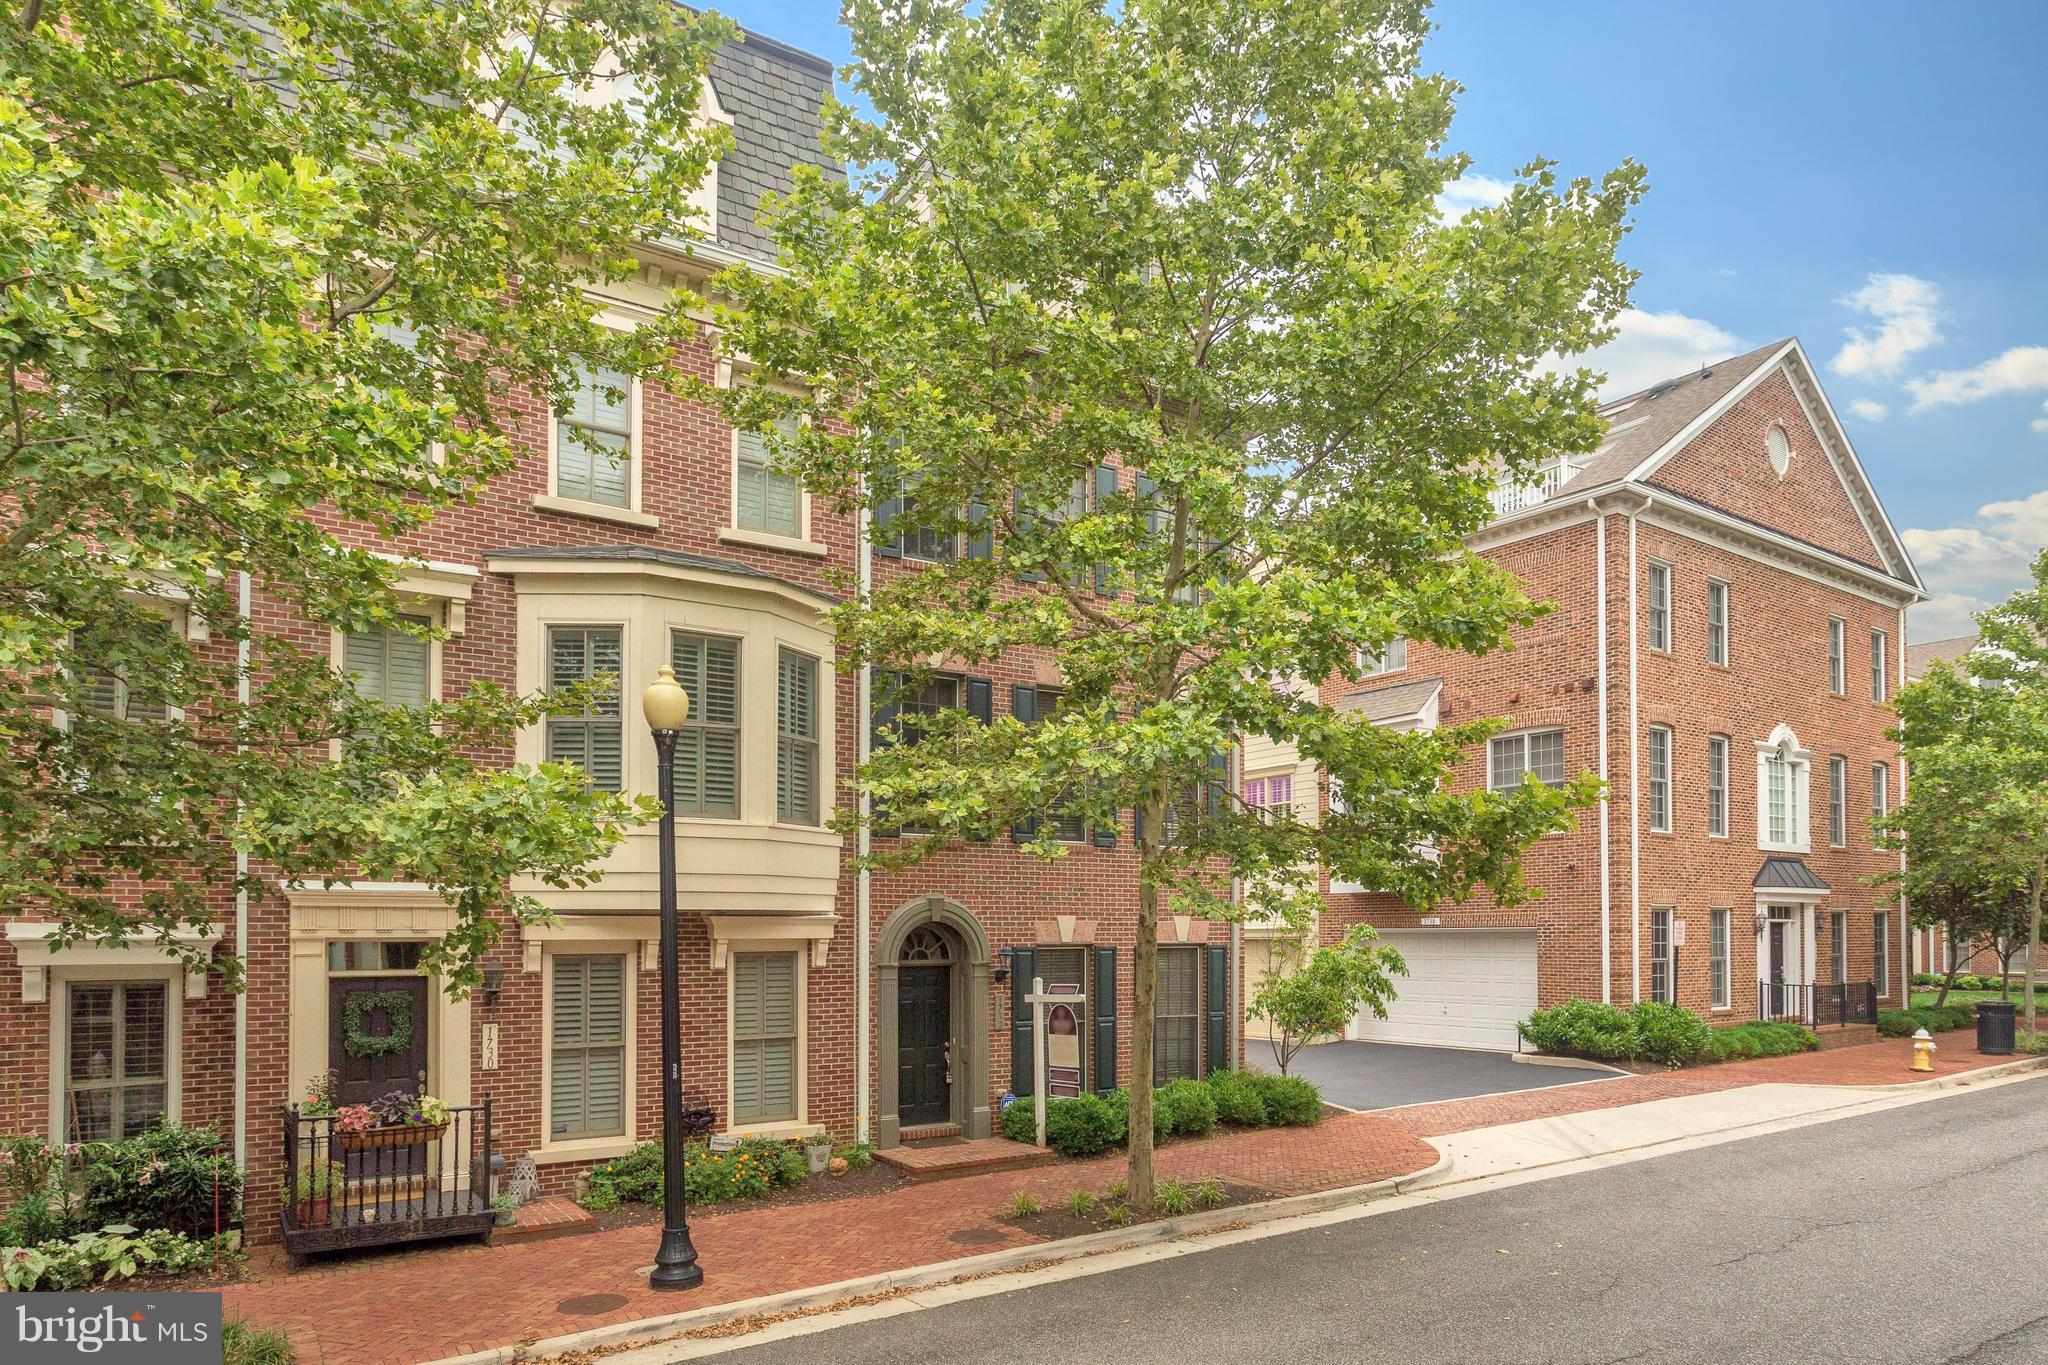 Thriving neighborhood punctuated by locally owned restaurants and shops, yet just minutes away from Potomac Yard Center, Braddock Rd metro, shopping & dining. End unit with space & light. Open floorplan w/hardwoods on main & bedroom levels. Chef~s kitchen, lux, owner~s suite w/elfa closet, dual vanity, soaking tub. Rooftop terrace! Community offers pool, exercise room, tot lot & shuttle to metro.